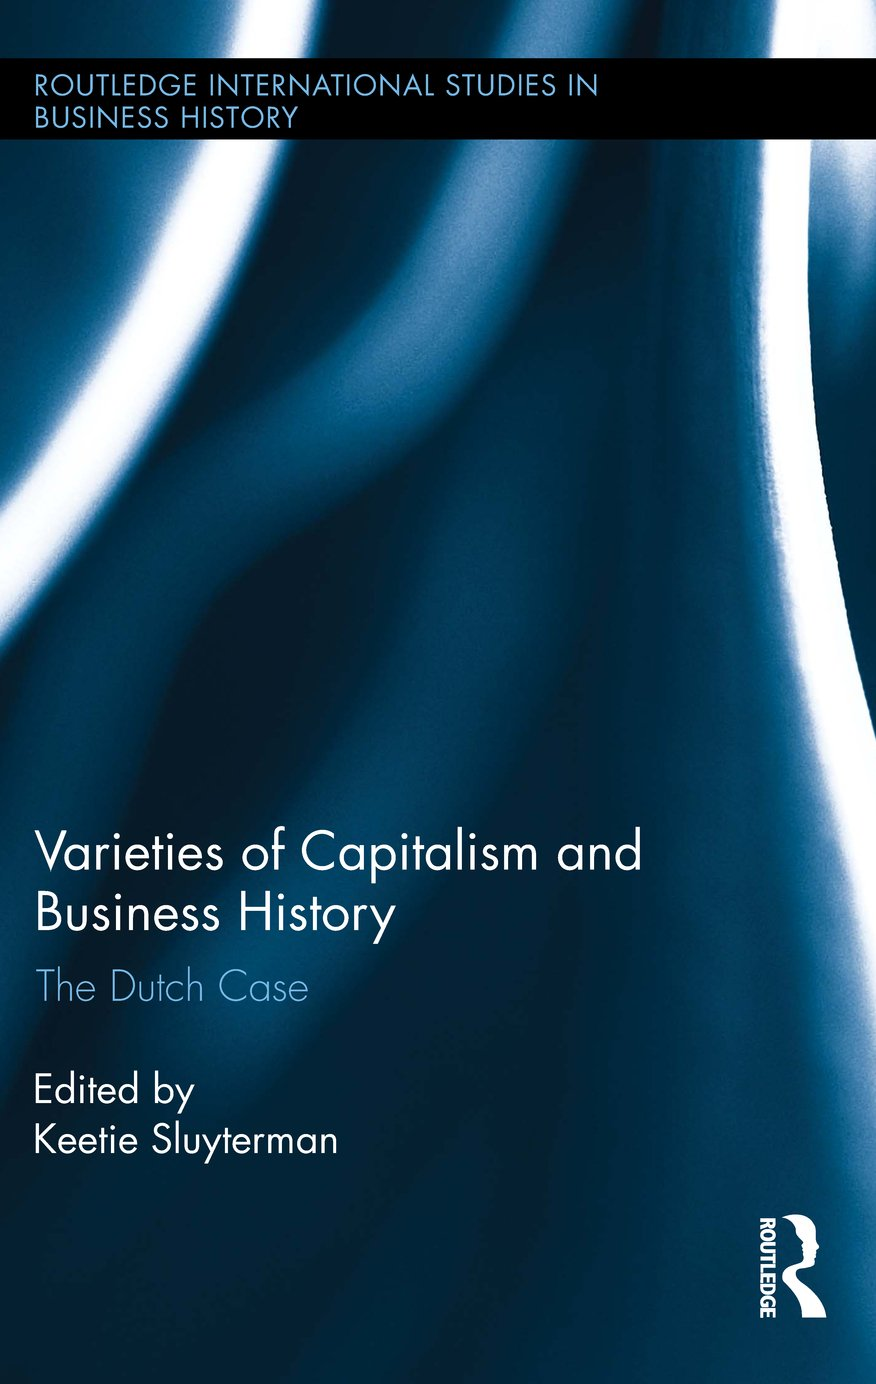 Varieties of Capitalism and Business History: The Dutch Case (Routledge International Studies in Business History Book 28)